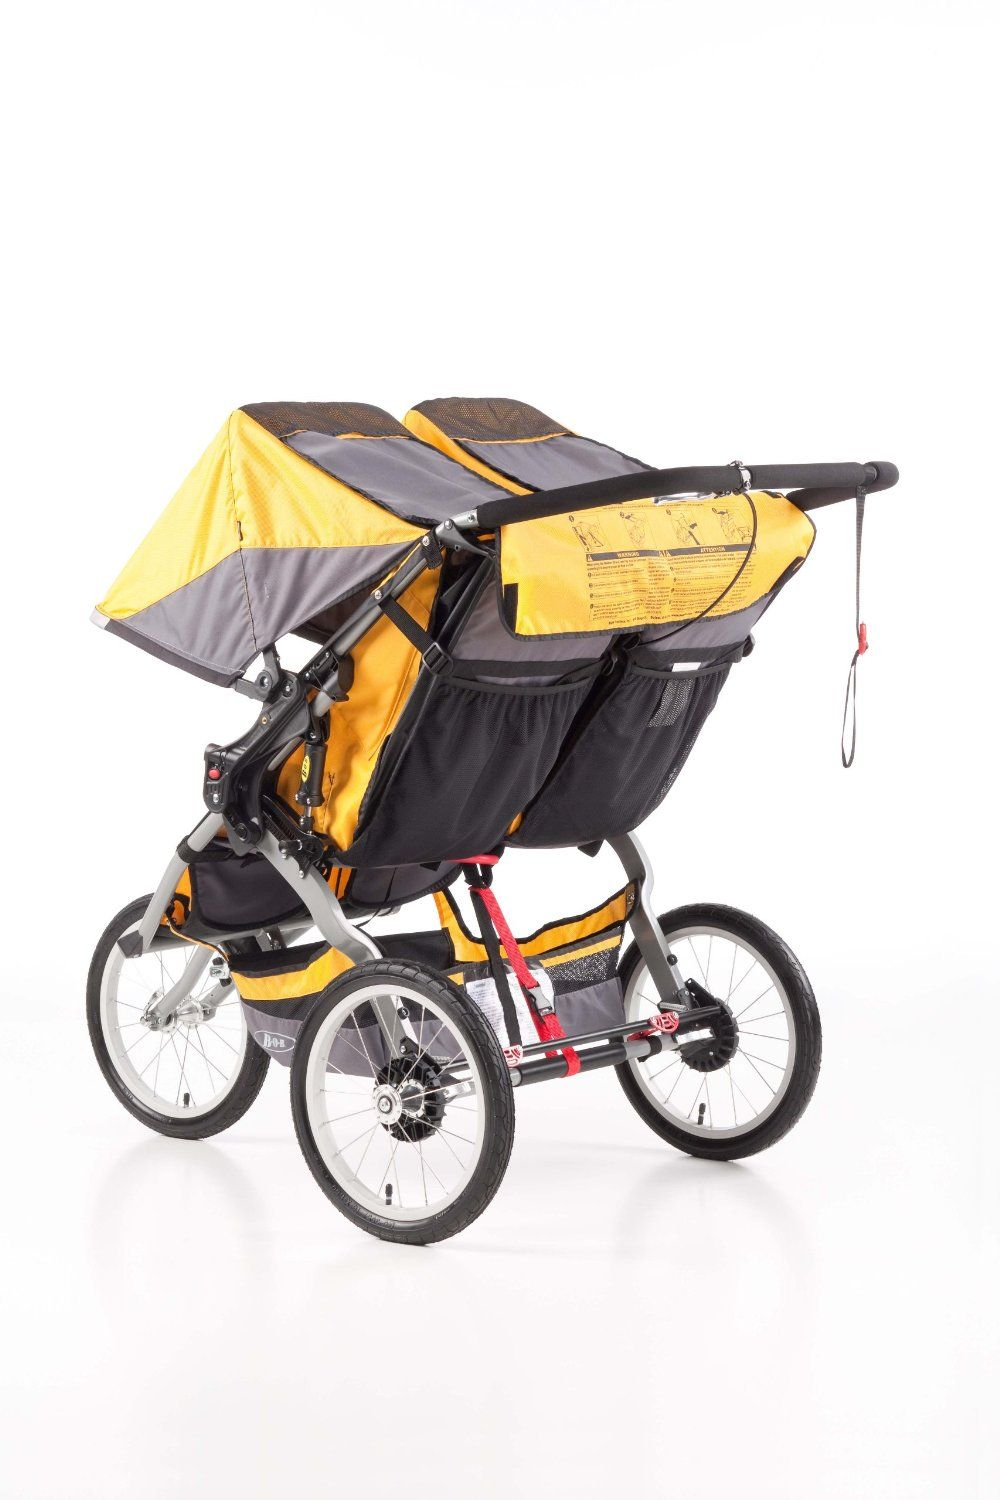 *BOB Ironman Duallie Stroller Review* Looking for the Best